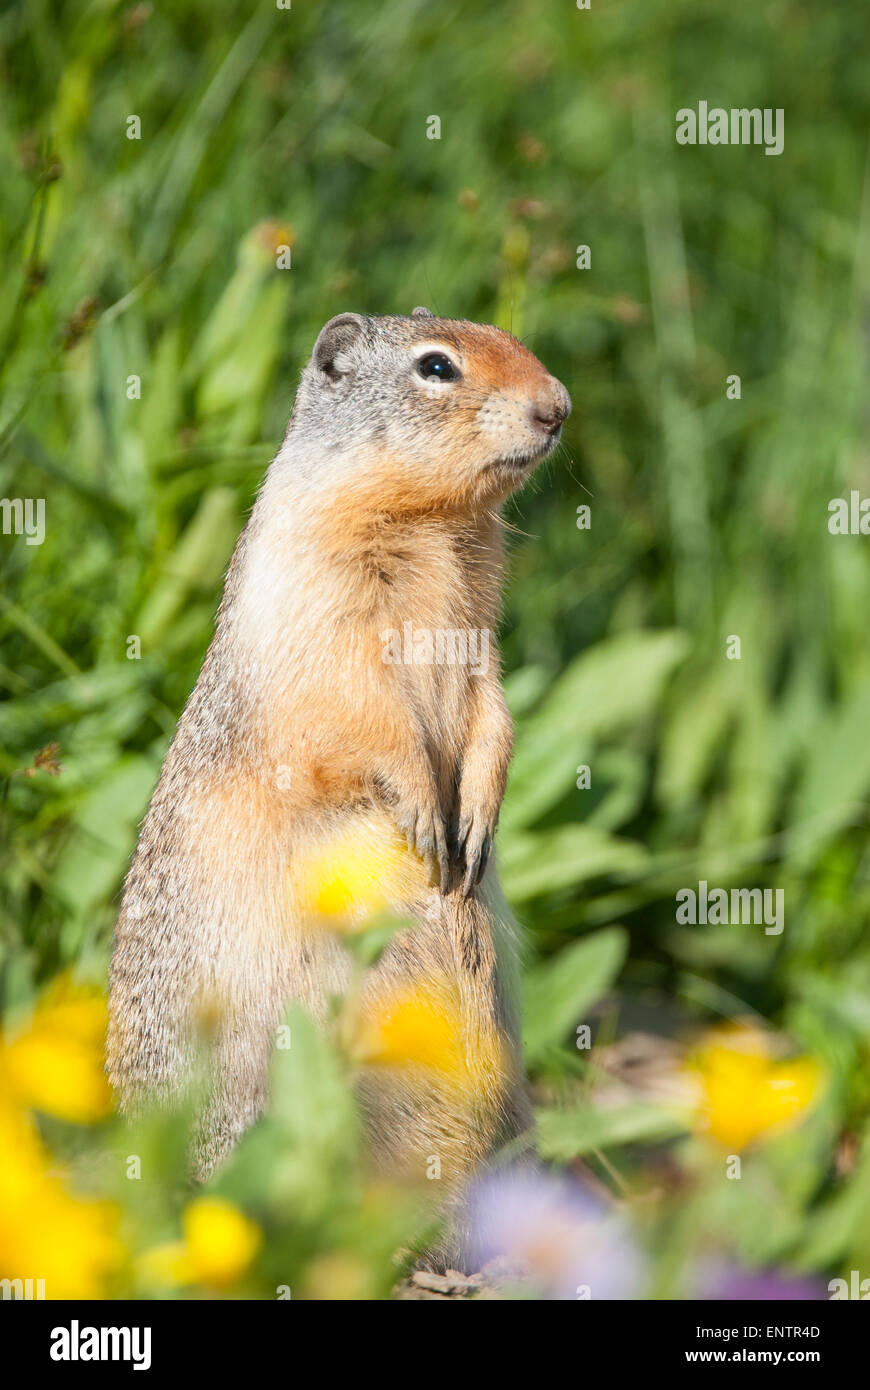 Columbian Ground Squirrel (Urocitellus columbianus),  Glacier National Park, Montana Stock Photo